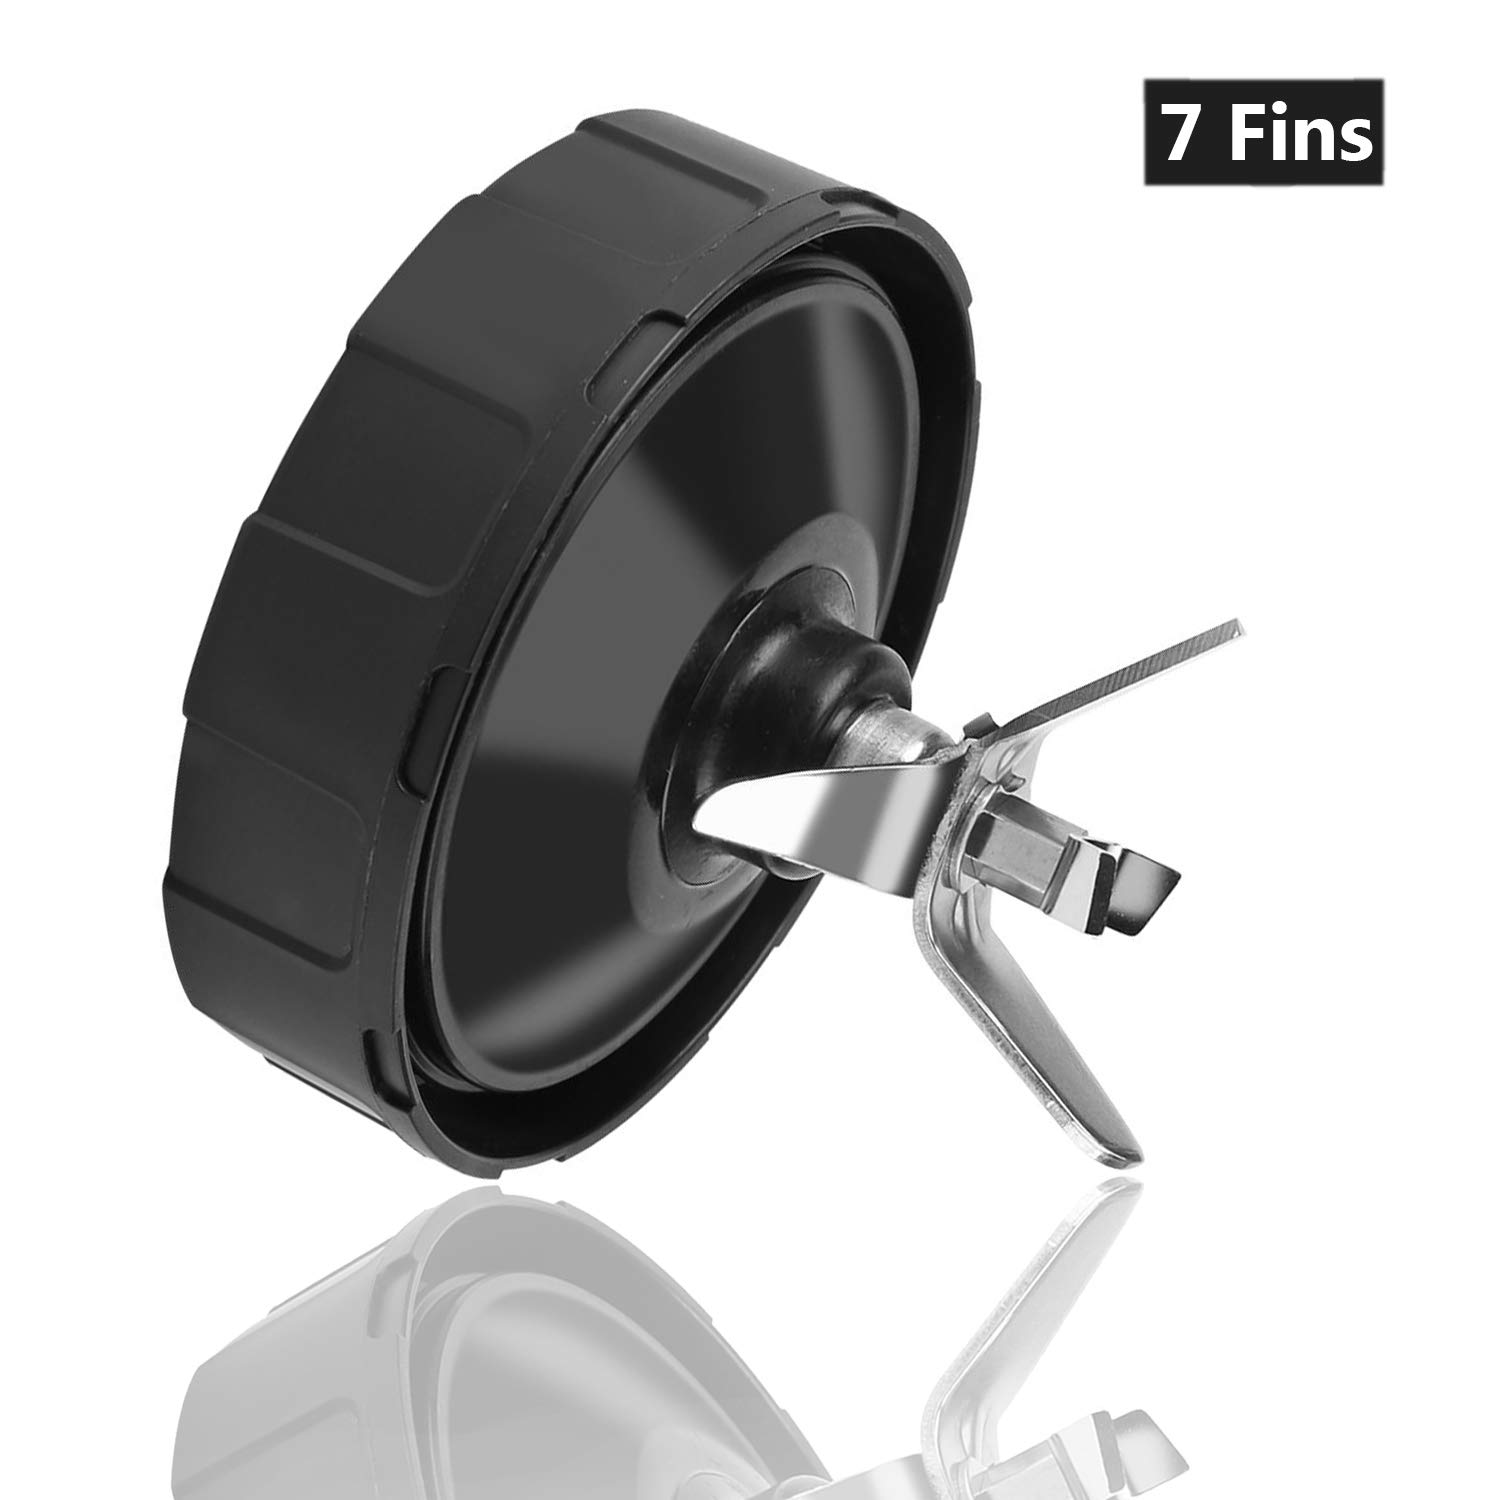 7 Fins 7 Fins Replacement Extractor Blade for Nutri Ninja Blender Replacement Parts Auto iQ Blade BL480-30 BL482 BL642 NN102 BL682 BL2013 BL640 BL642Z BL480D